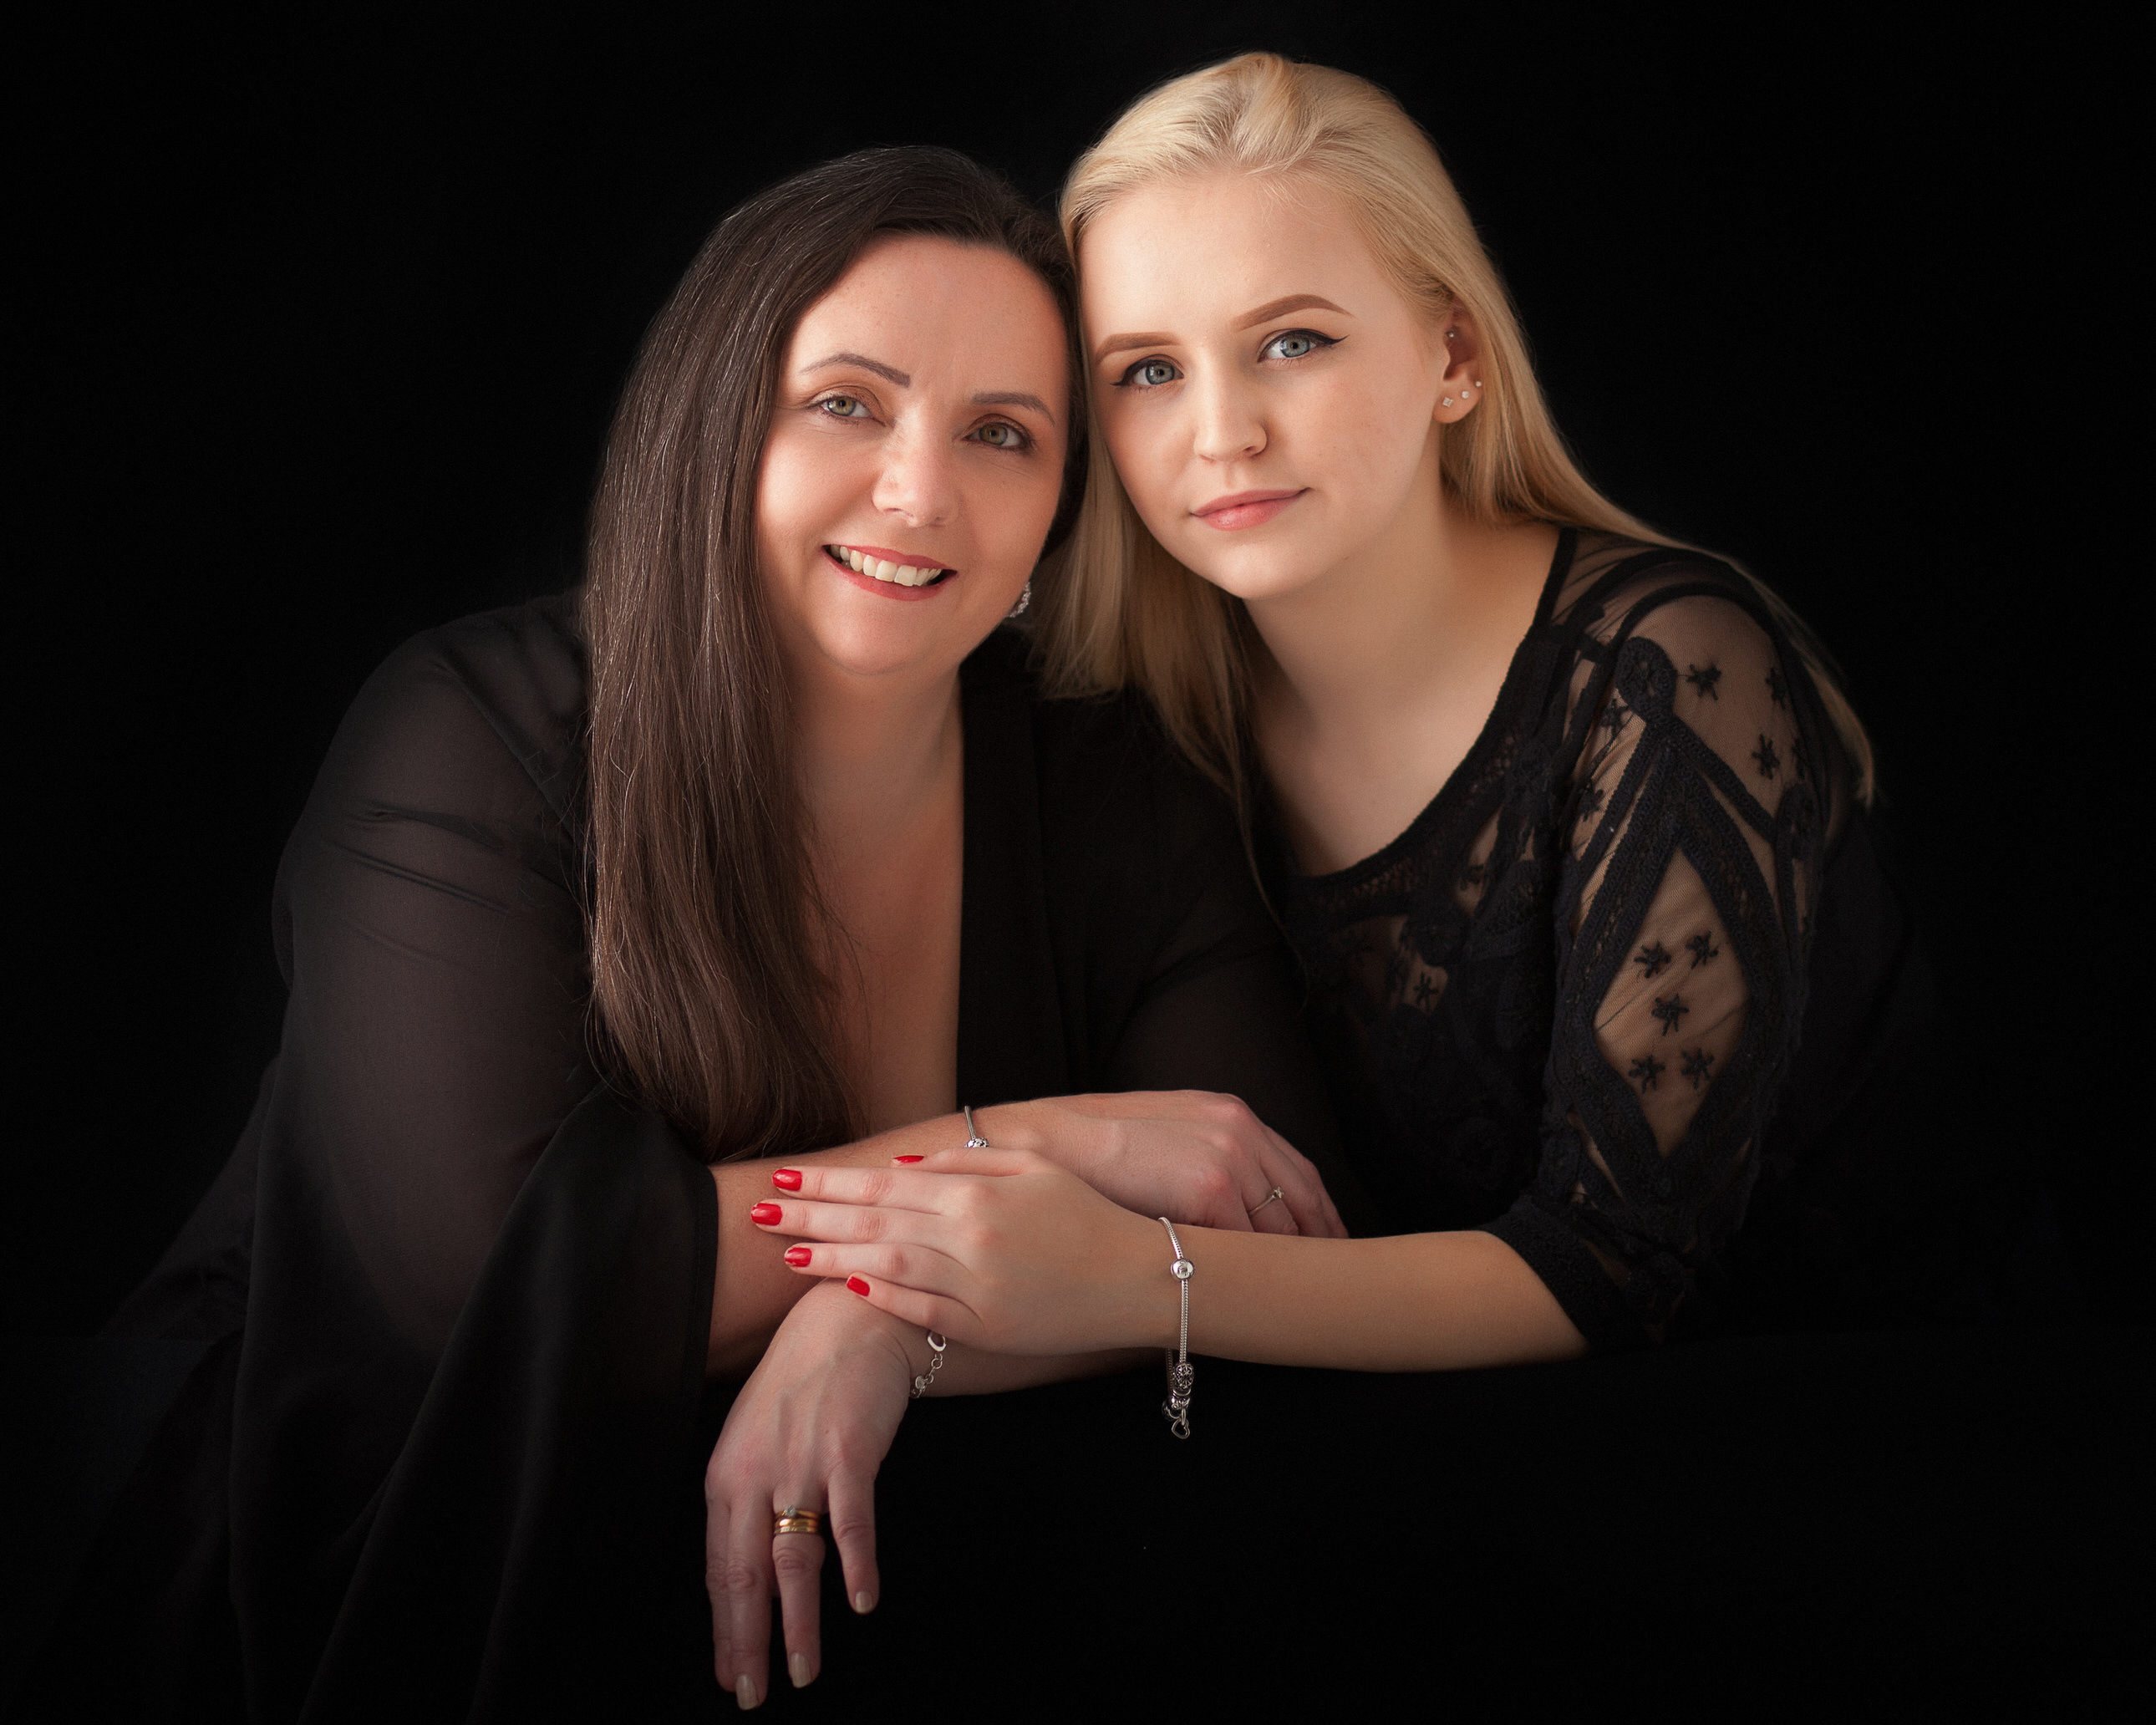 Mum and daughter in studio by Family photographer Lancashire